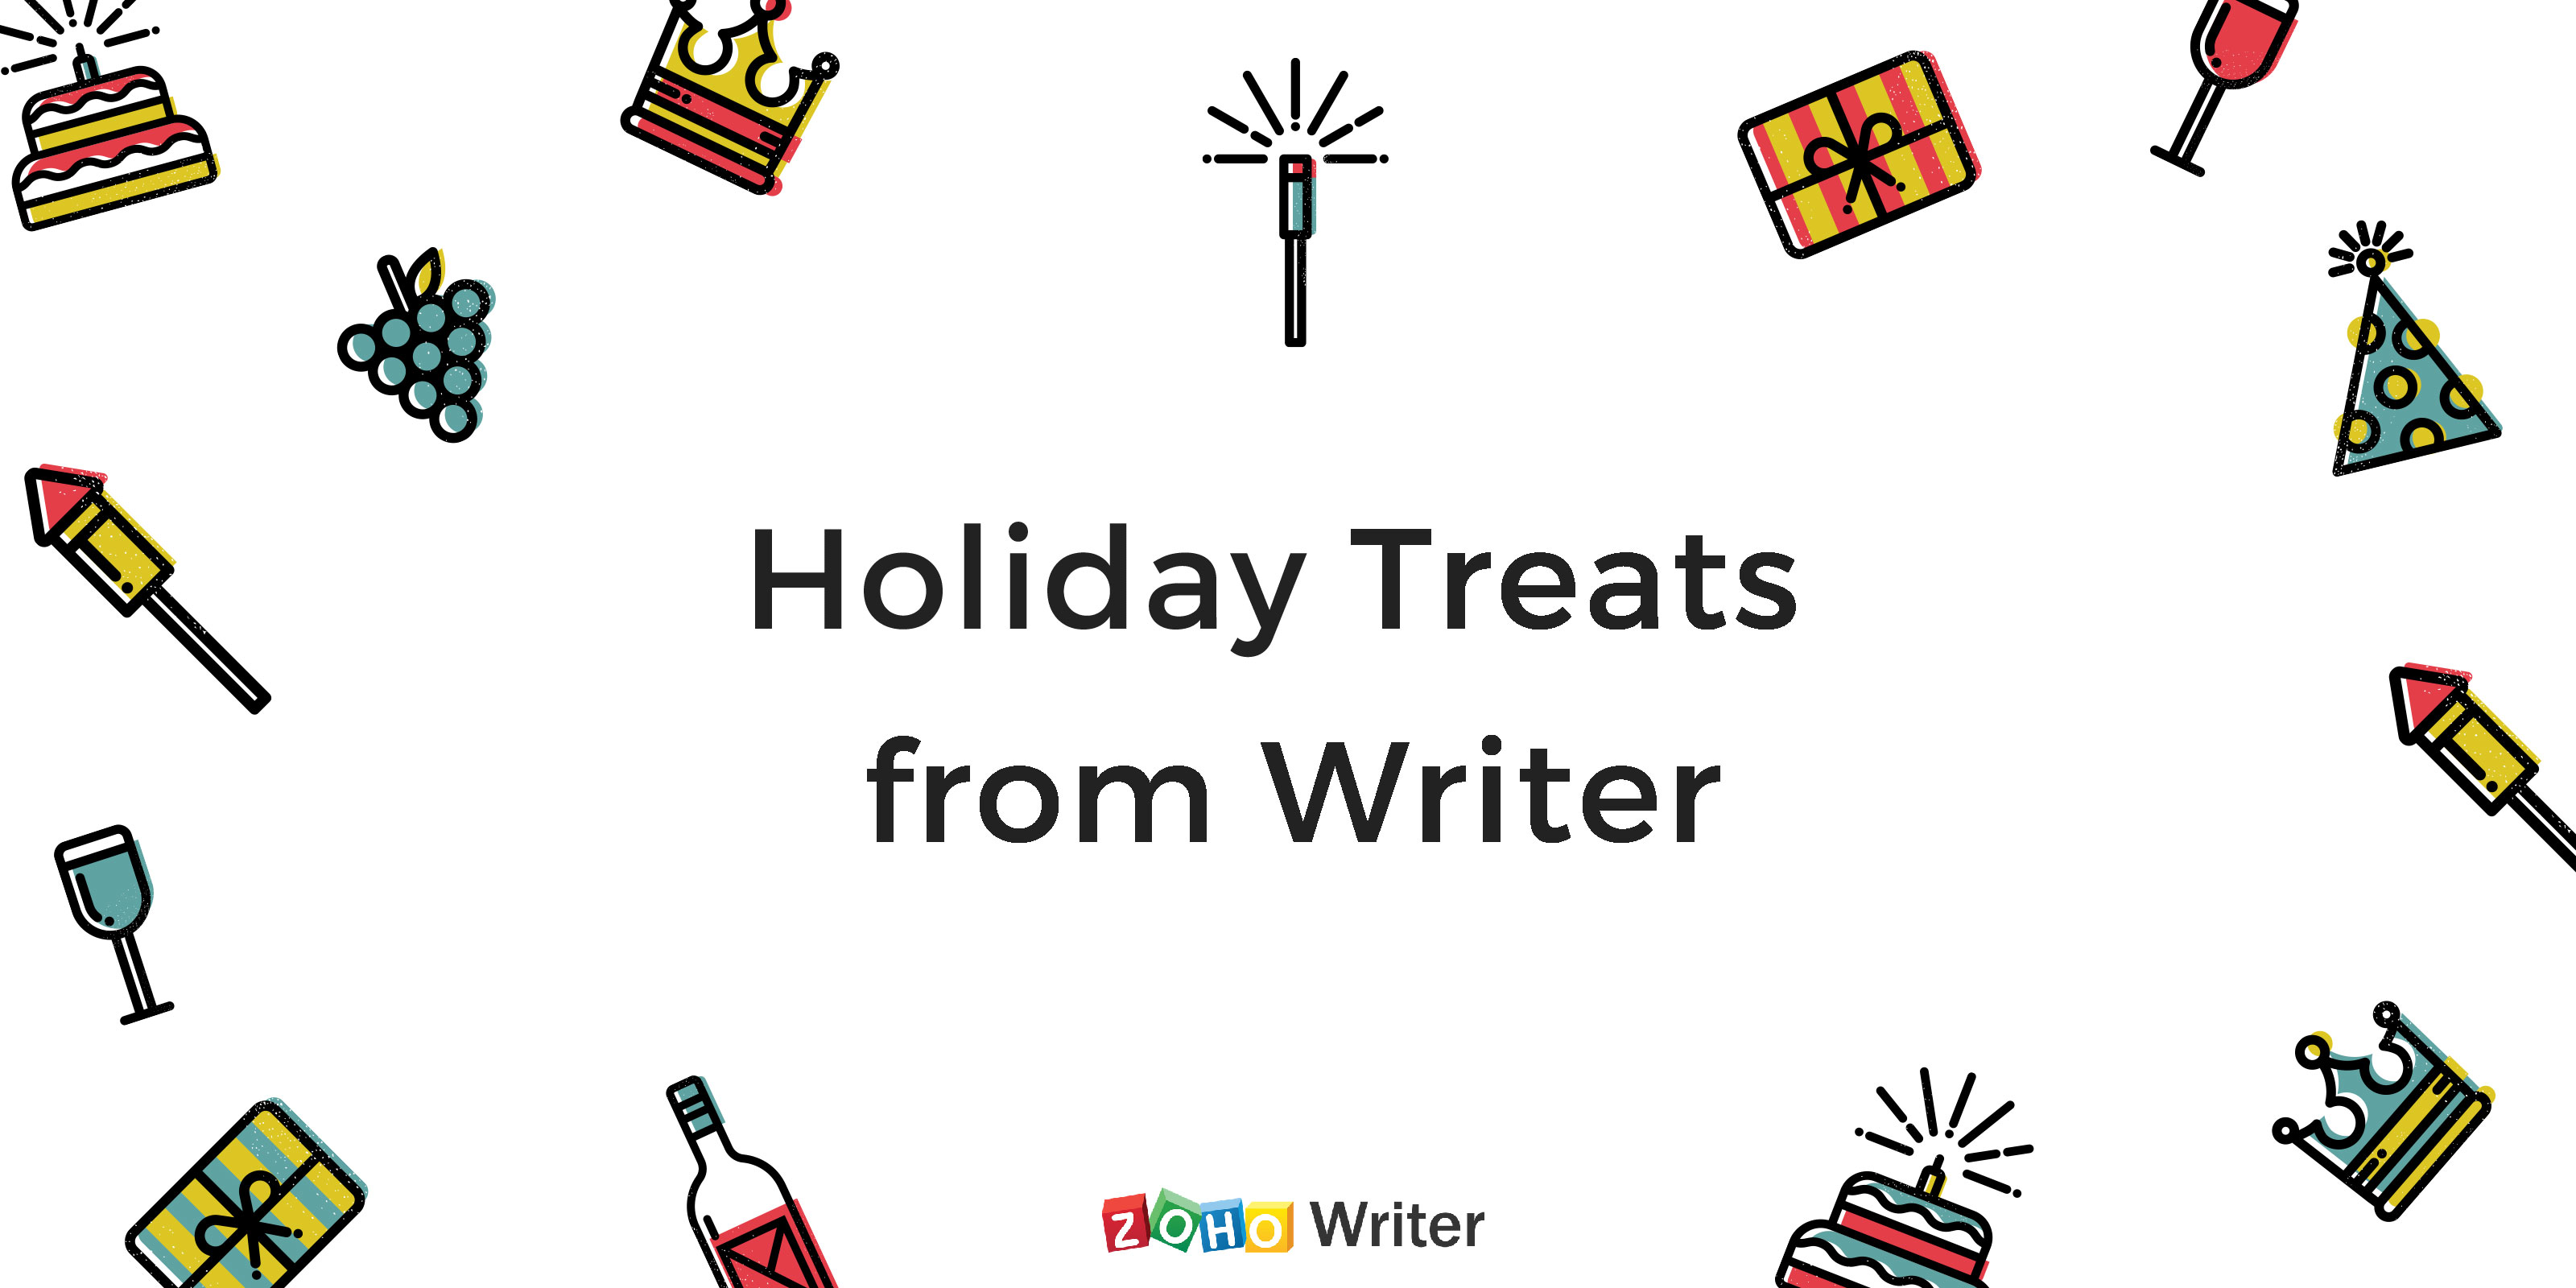 Holiday treats from Writer